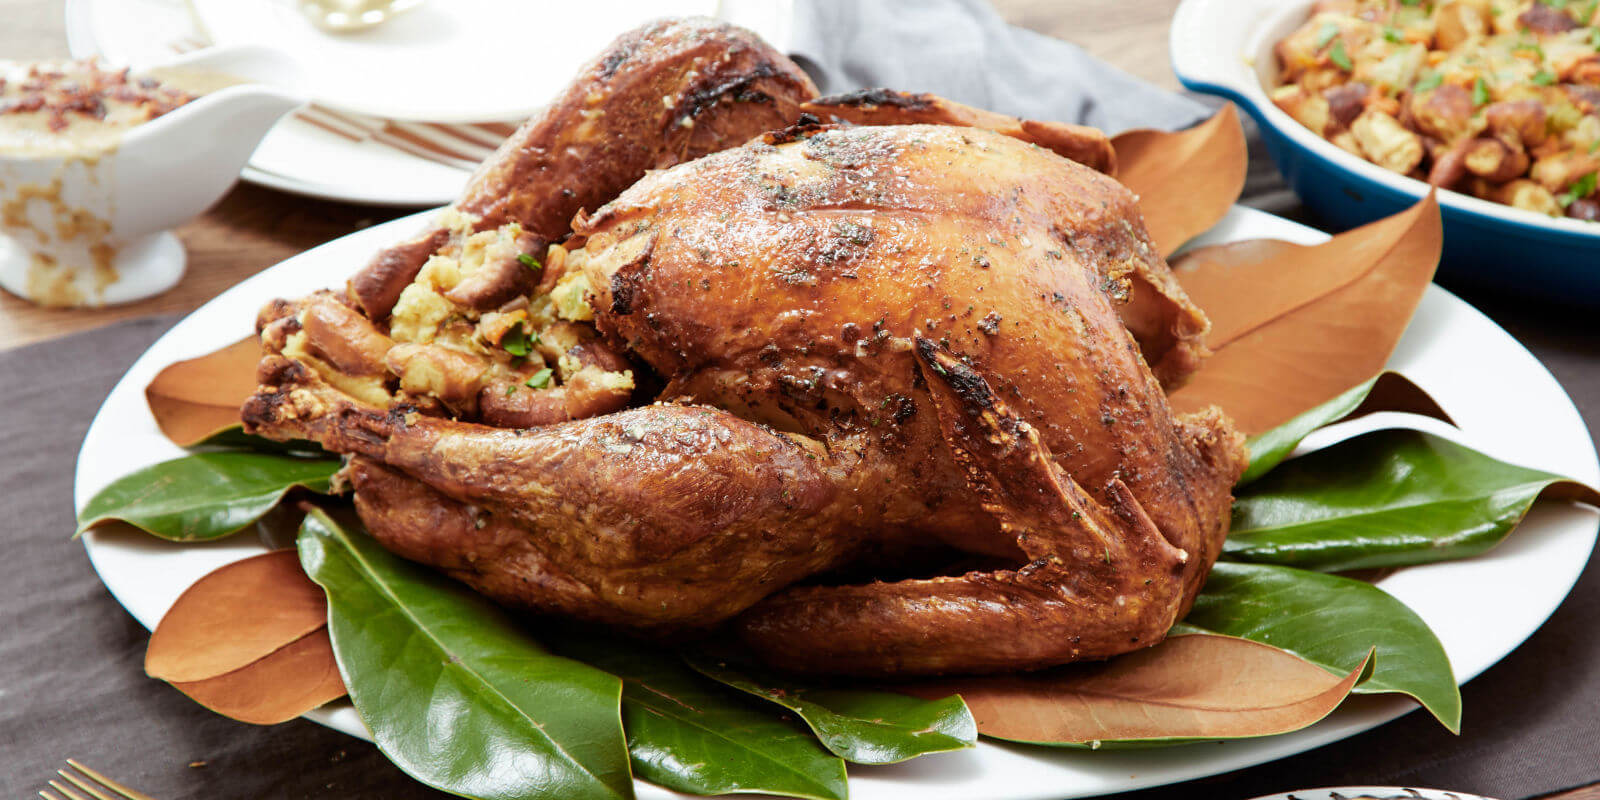 Try out some new ideas when cooking turkey